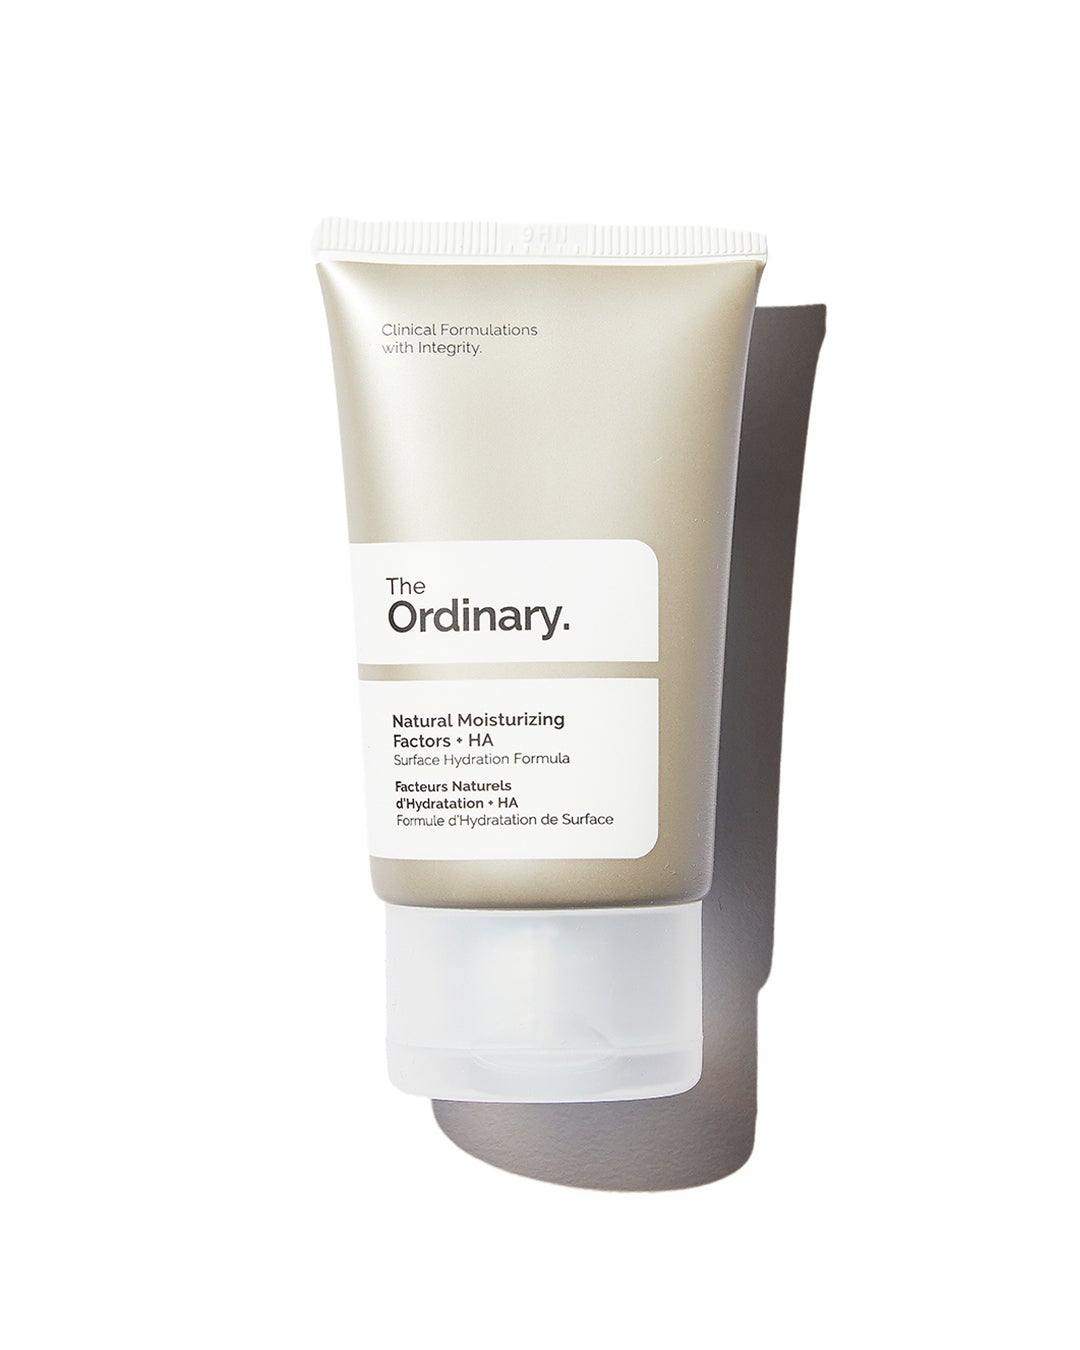 The Ordinary Natural Moisturizing Factors in silver tube with white label on white background